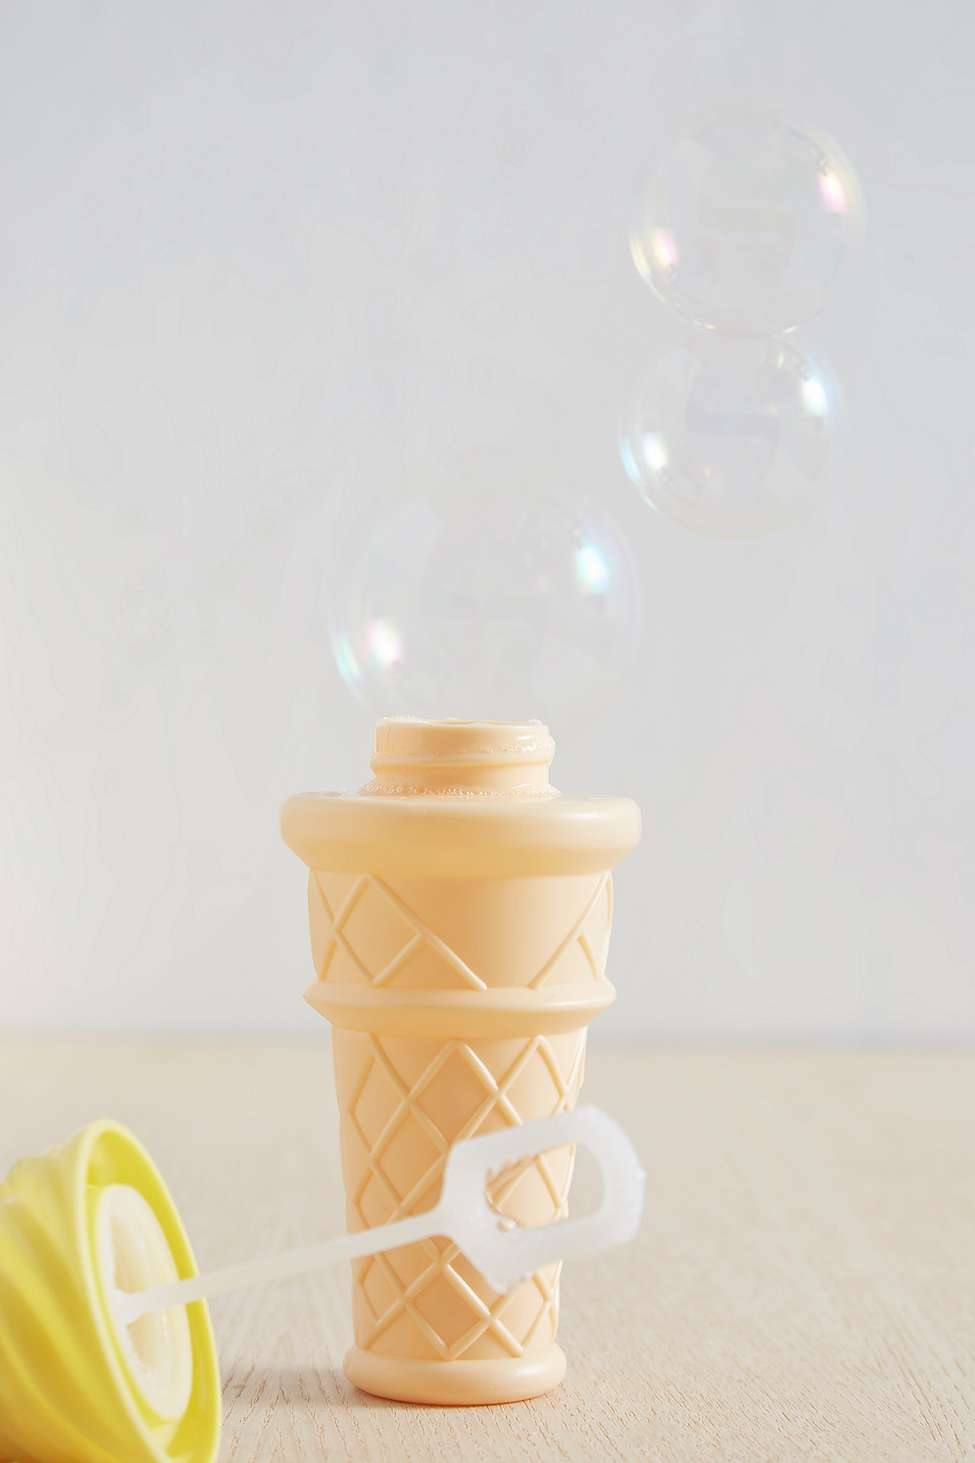 Slide View: 2: Ice Cream Bubbles